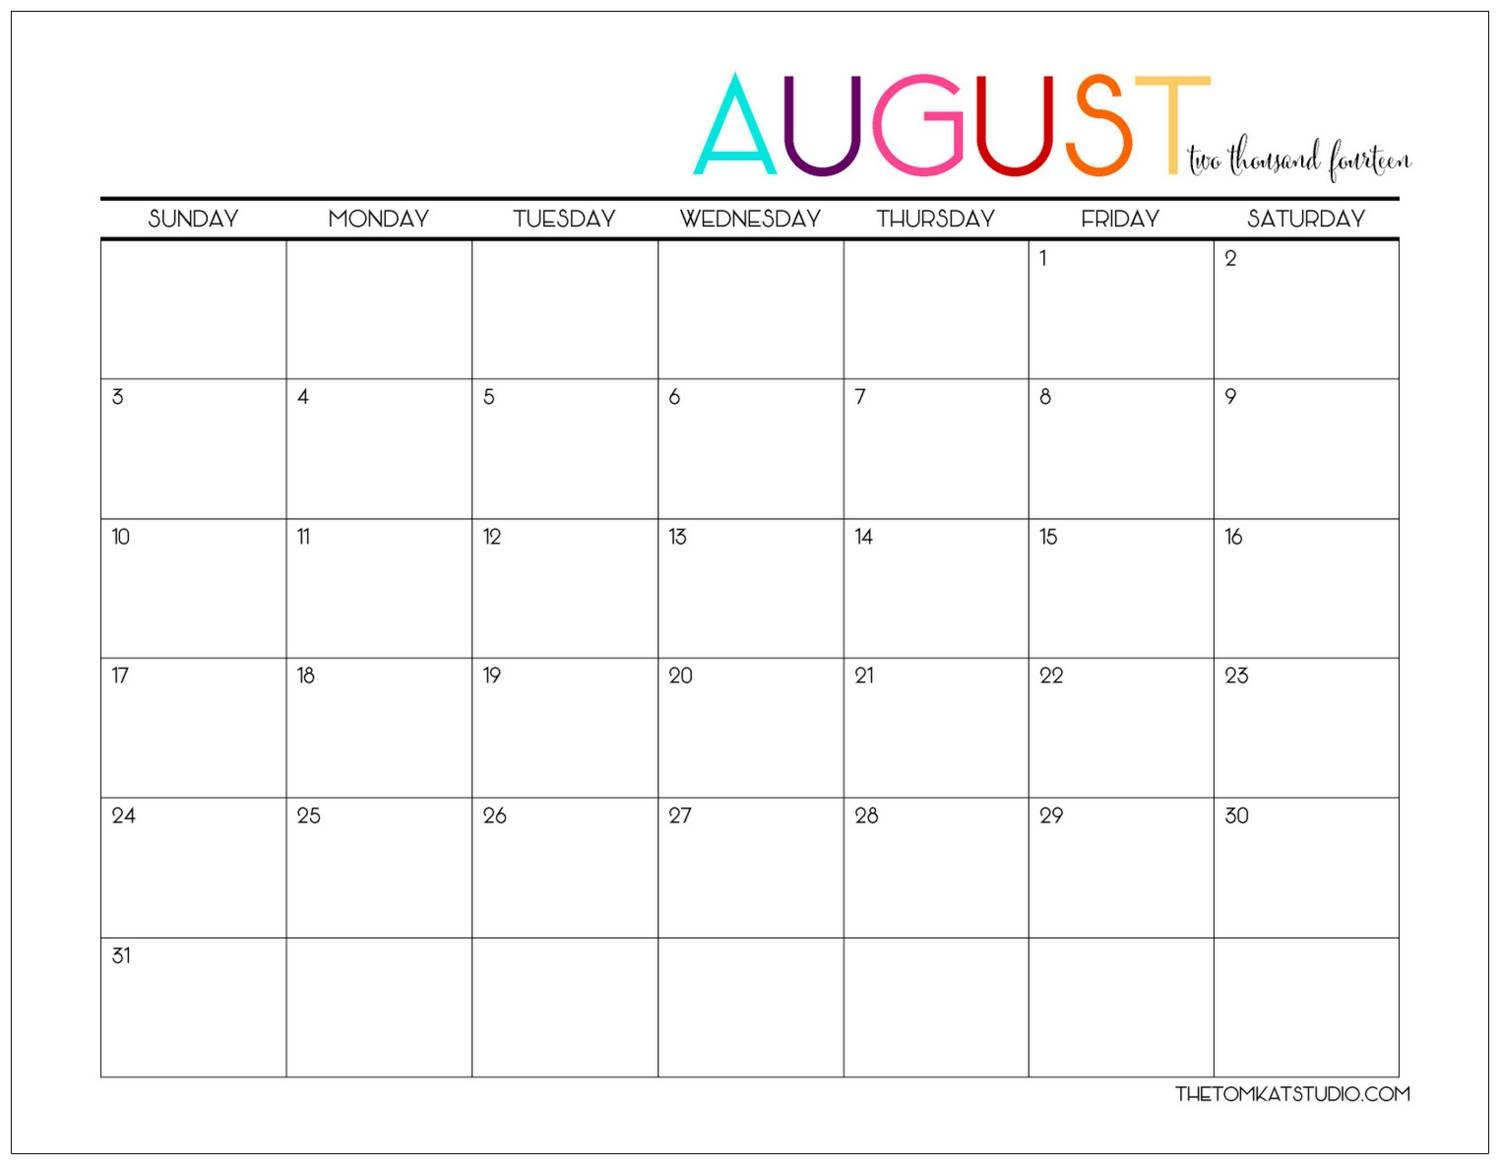 august calendar the tomkat studio blog calendar1 printable Cute Printable Calendar For August 2018 erdferdf